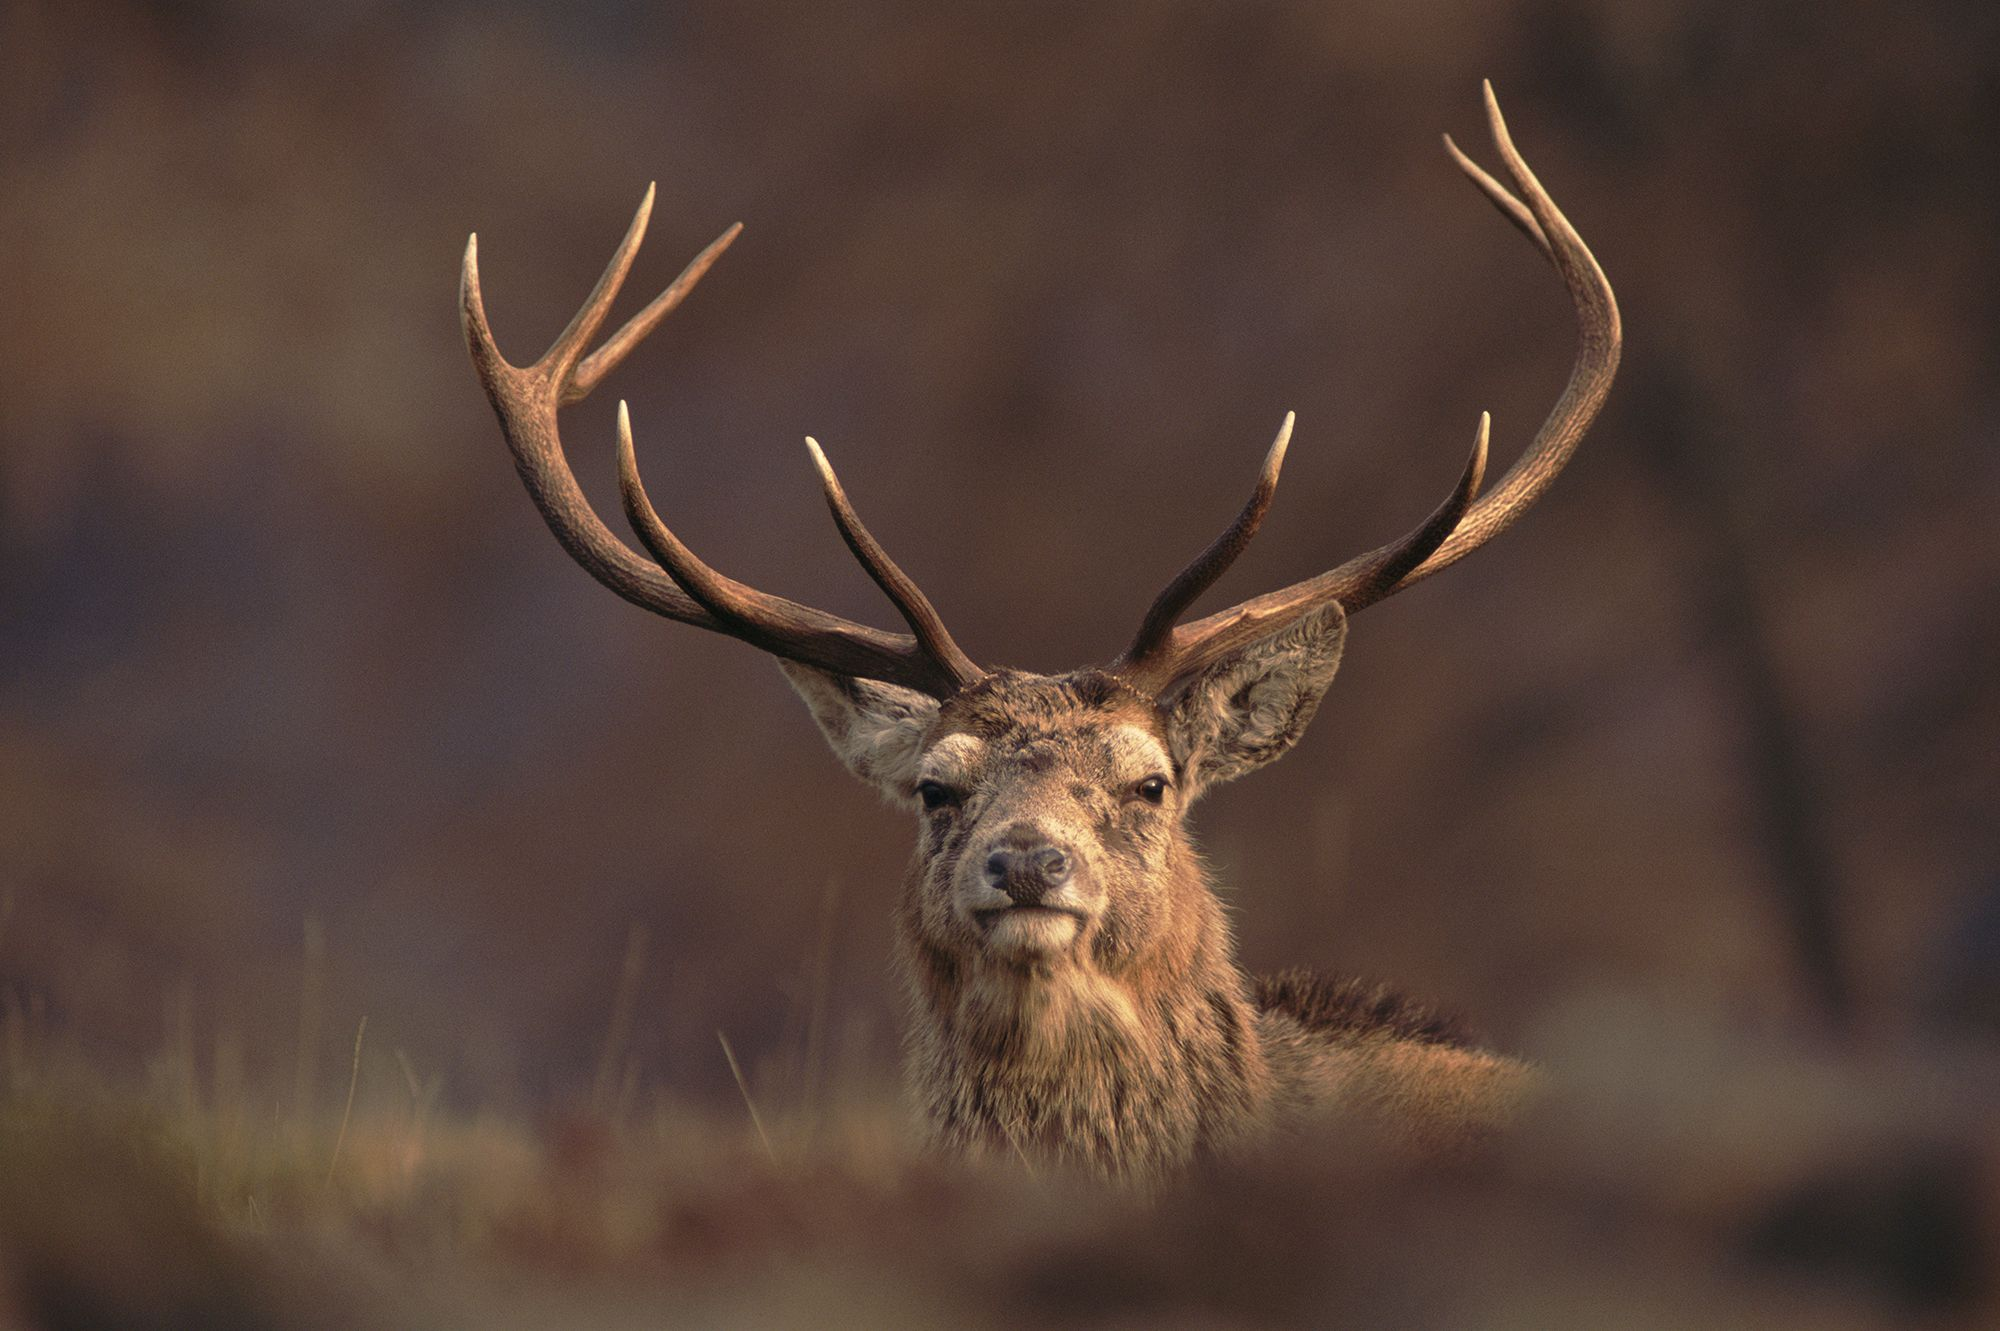 A Red Deer (Cervus elaphus) stag's head with majestic antlers peering over a hummock towards the camera, known as the Monarch of the Glen in the Scottish Hightlands they are Britain's largest native deer